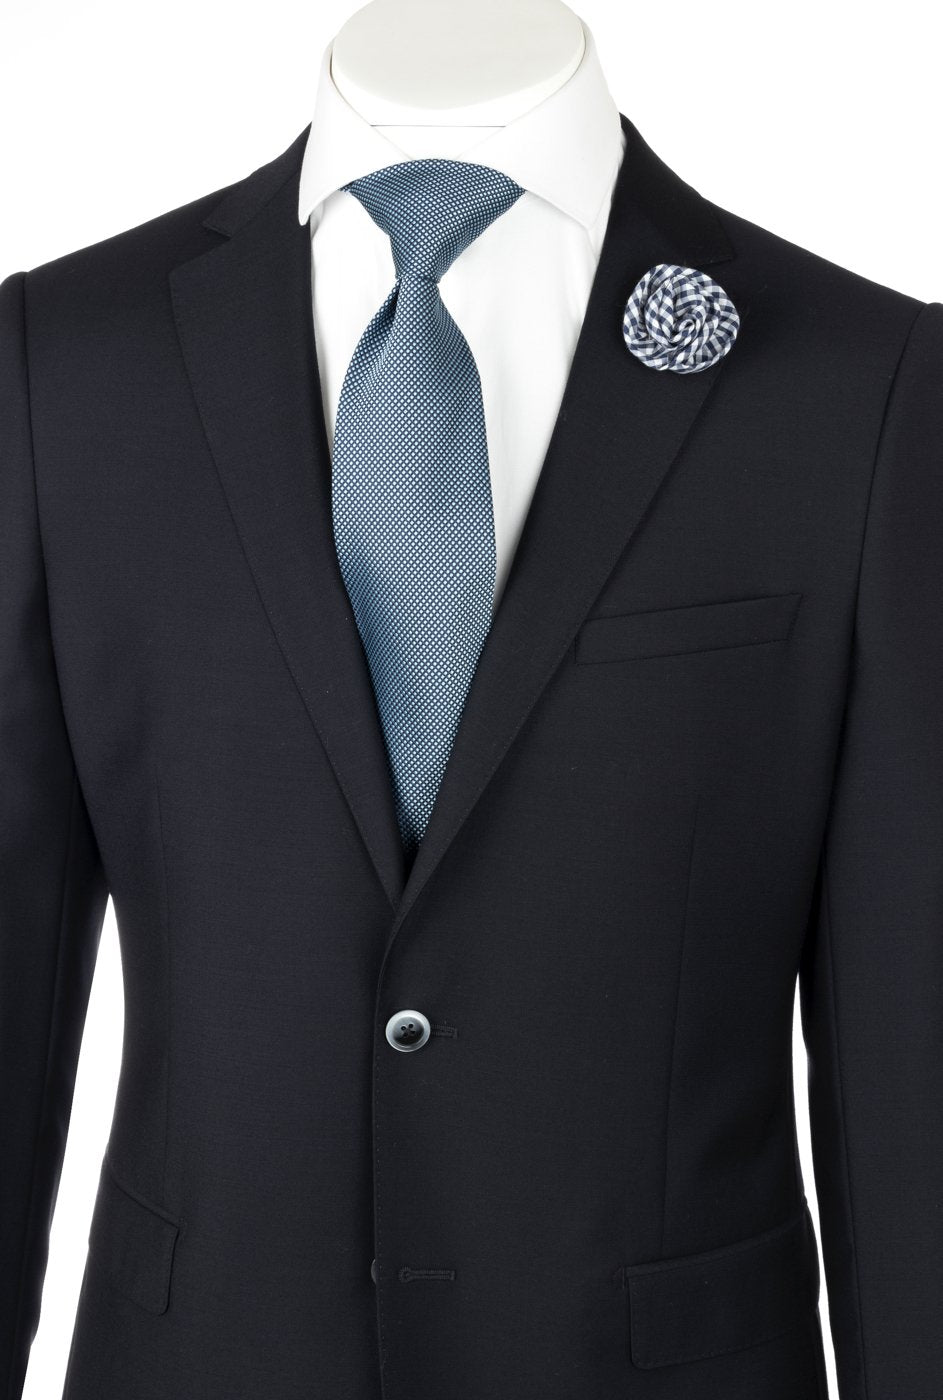 Porto Dark Navy, Slim Fit, Pure Wool Suit by Tiglio Luxe TIG1002